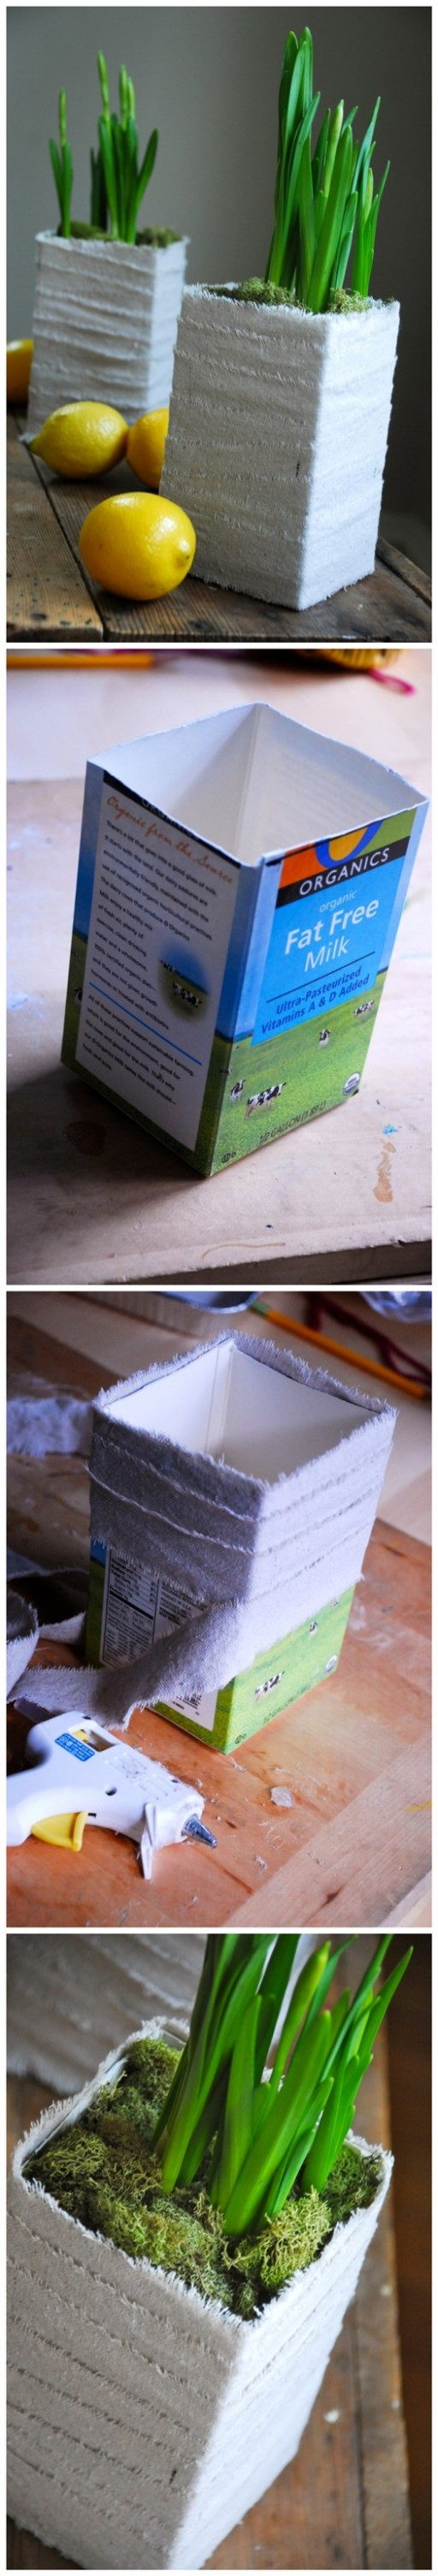 How To Turn Milk Carton Into Beautiful Planters